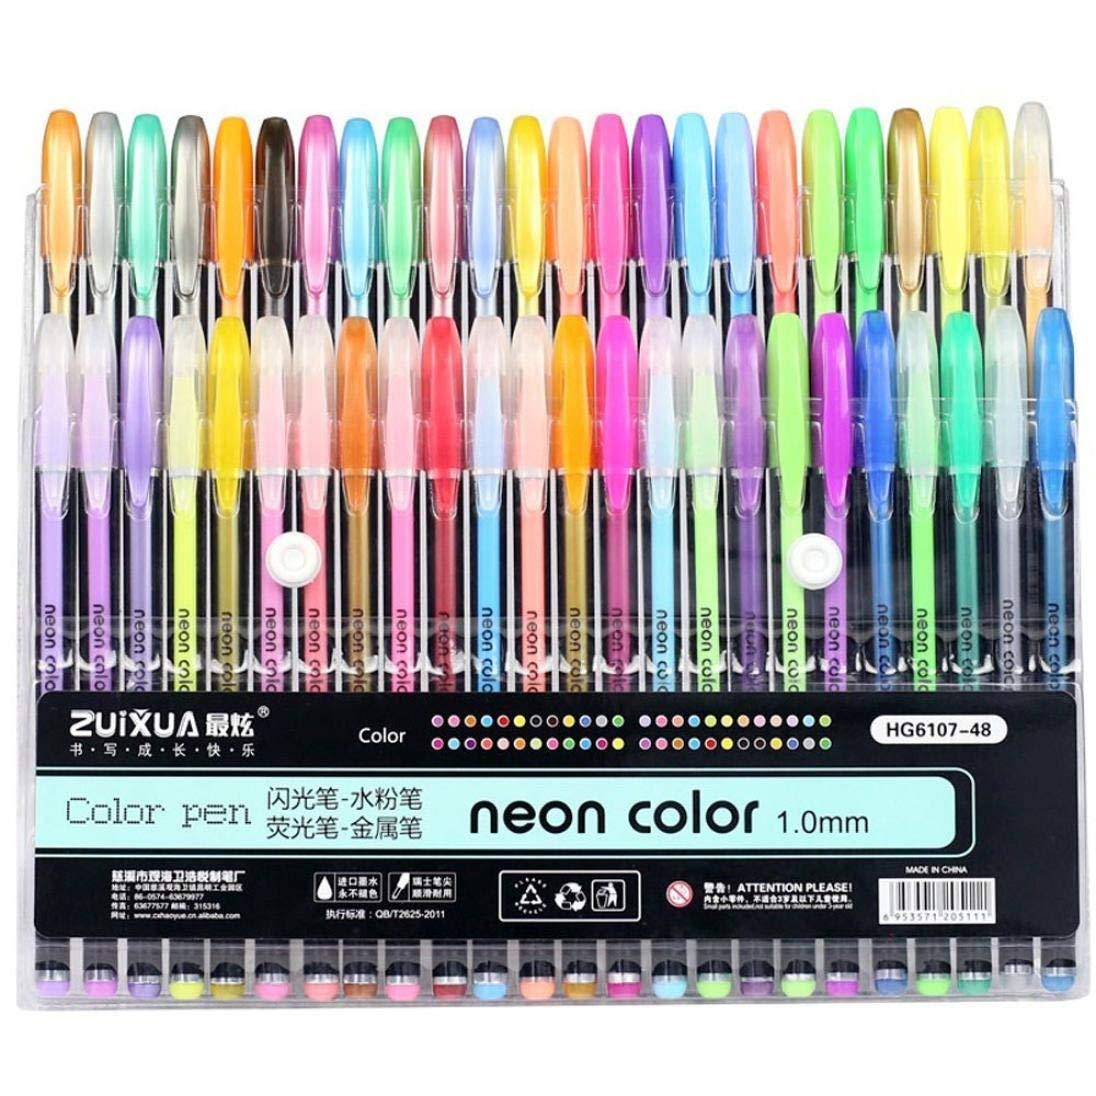 Rumas Watercolor Gel Pens Set - 48Pcs, Bullet Highlighter Pens for Sketching Adult Coloring Book Underlinig, Assorted Colored Office School Stationery Supplies Marker Pens for Kids (Multicolor)